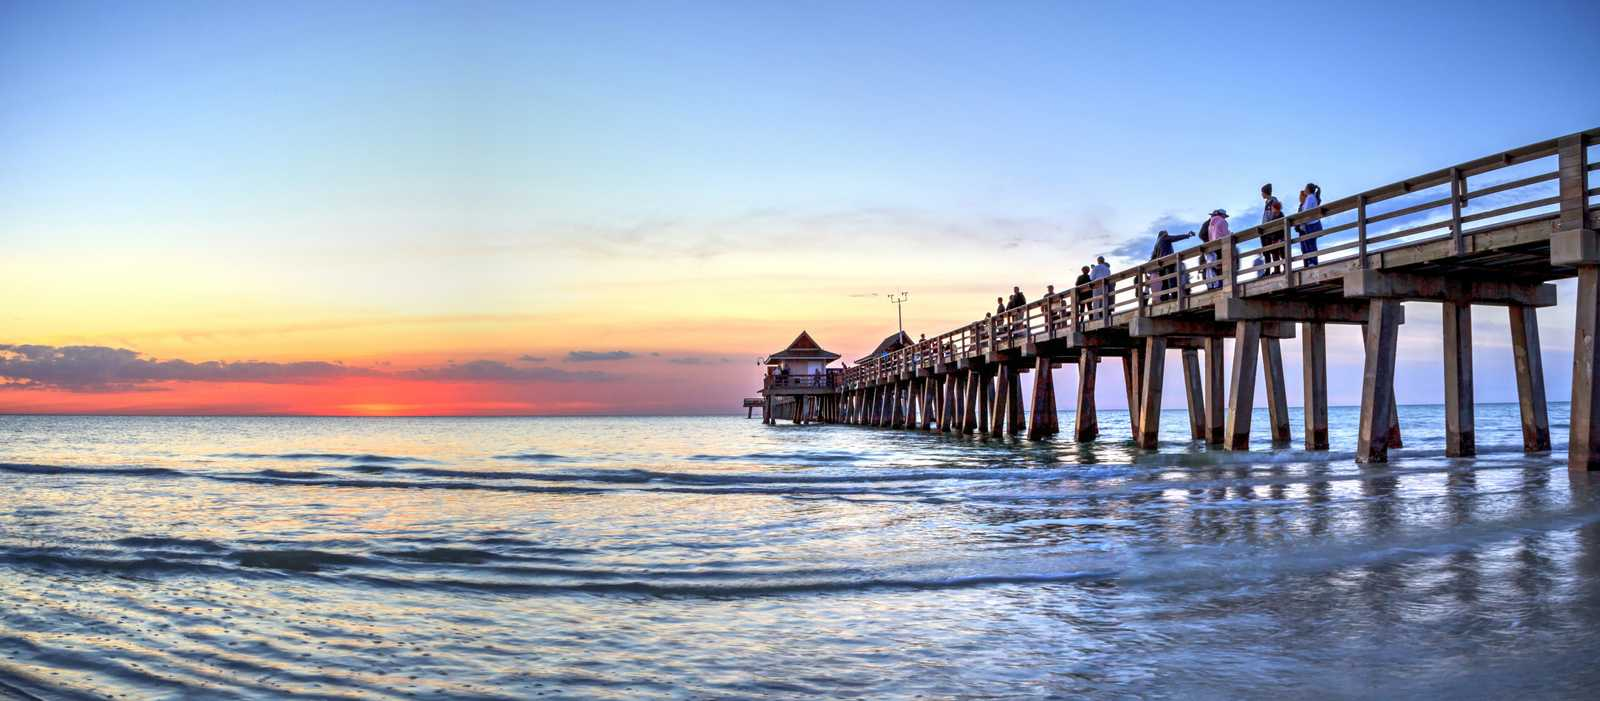 Sonnenuntergang am Pier in Naples, Florida